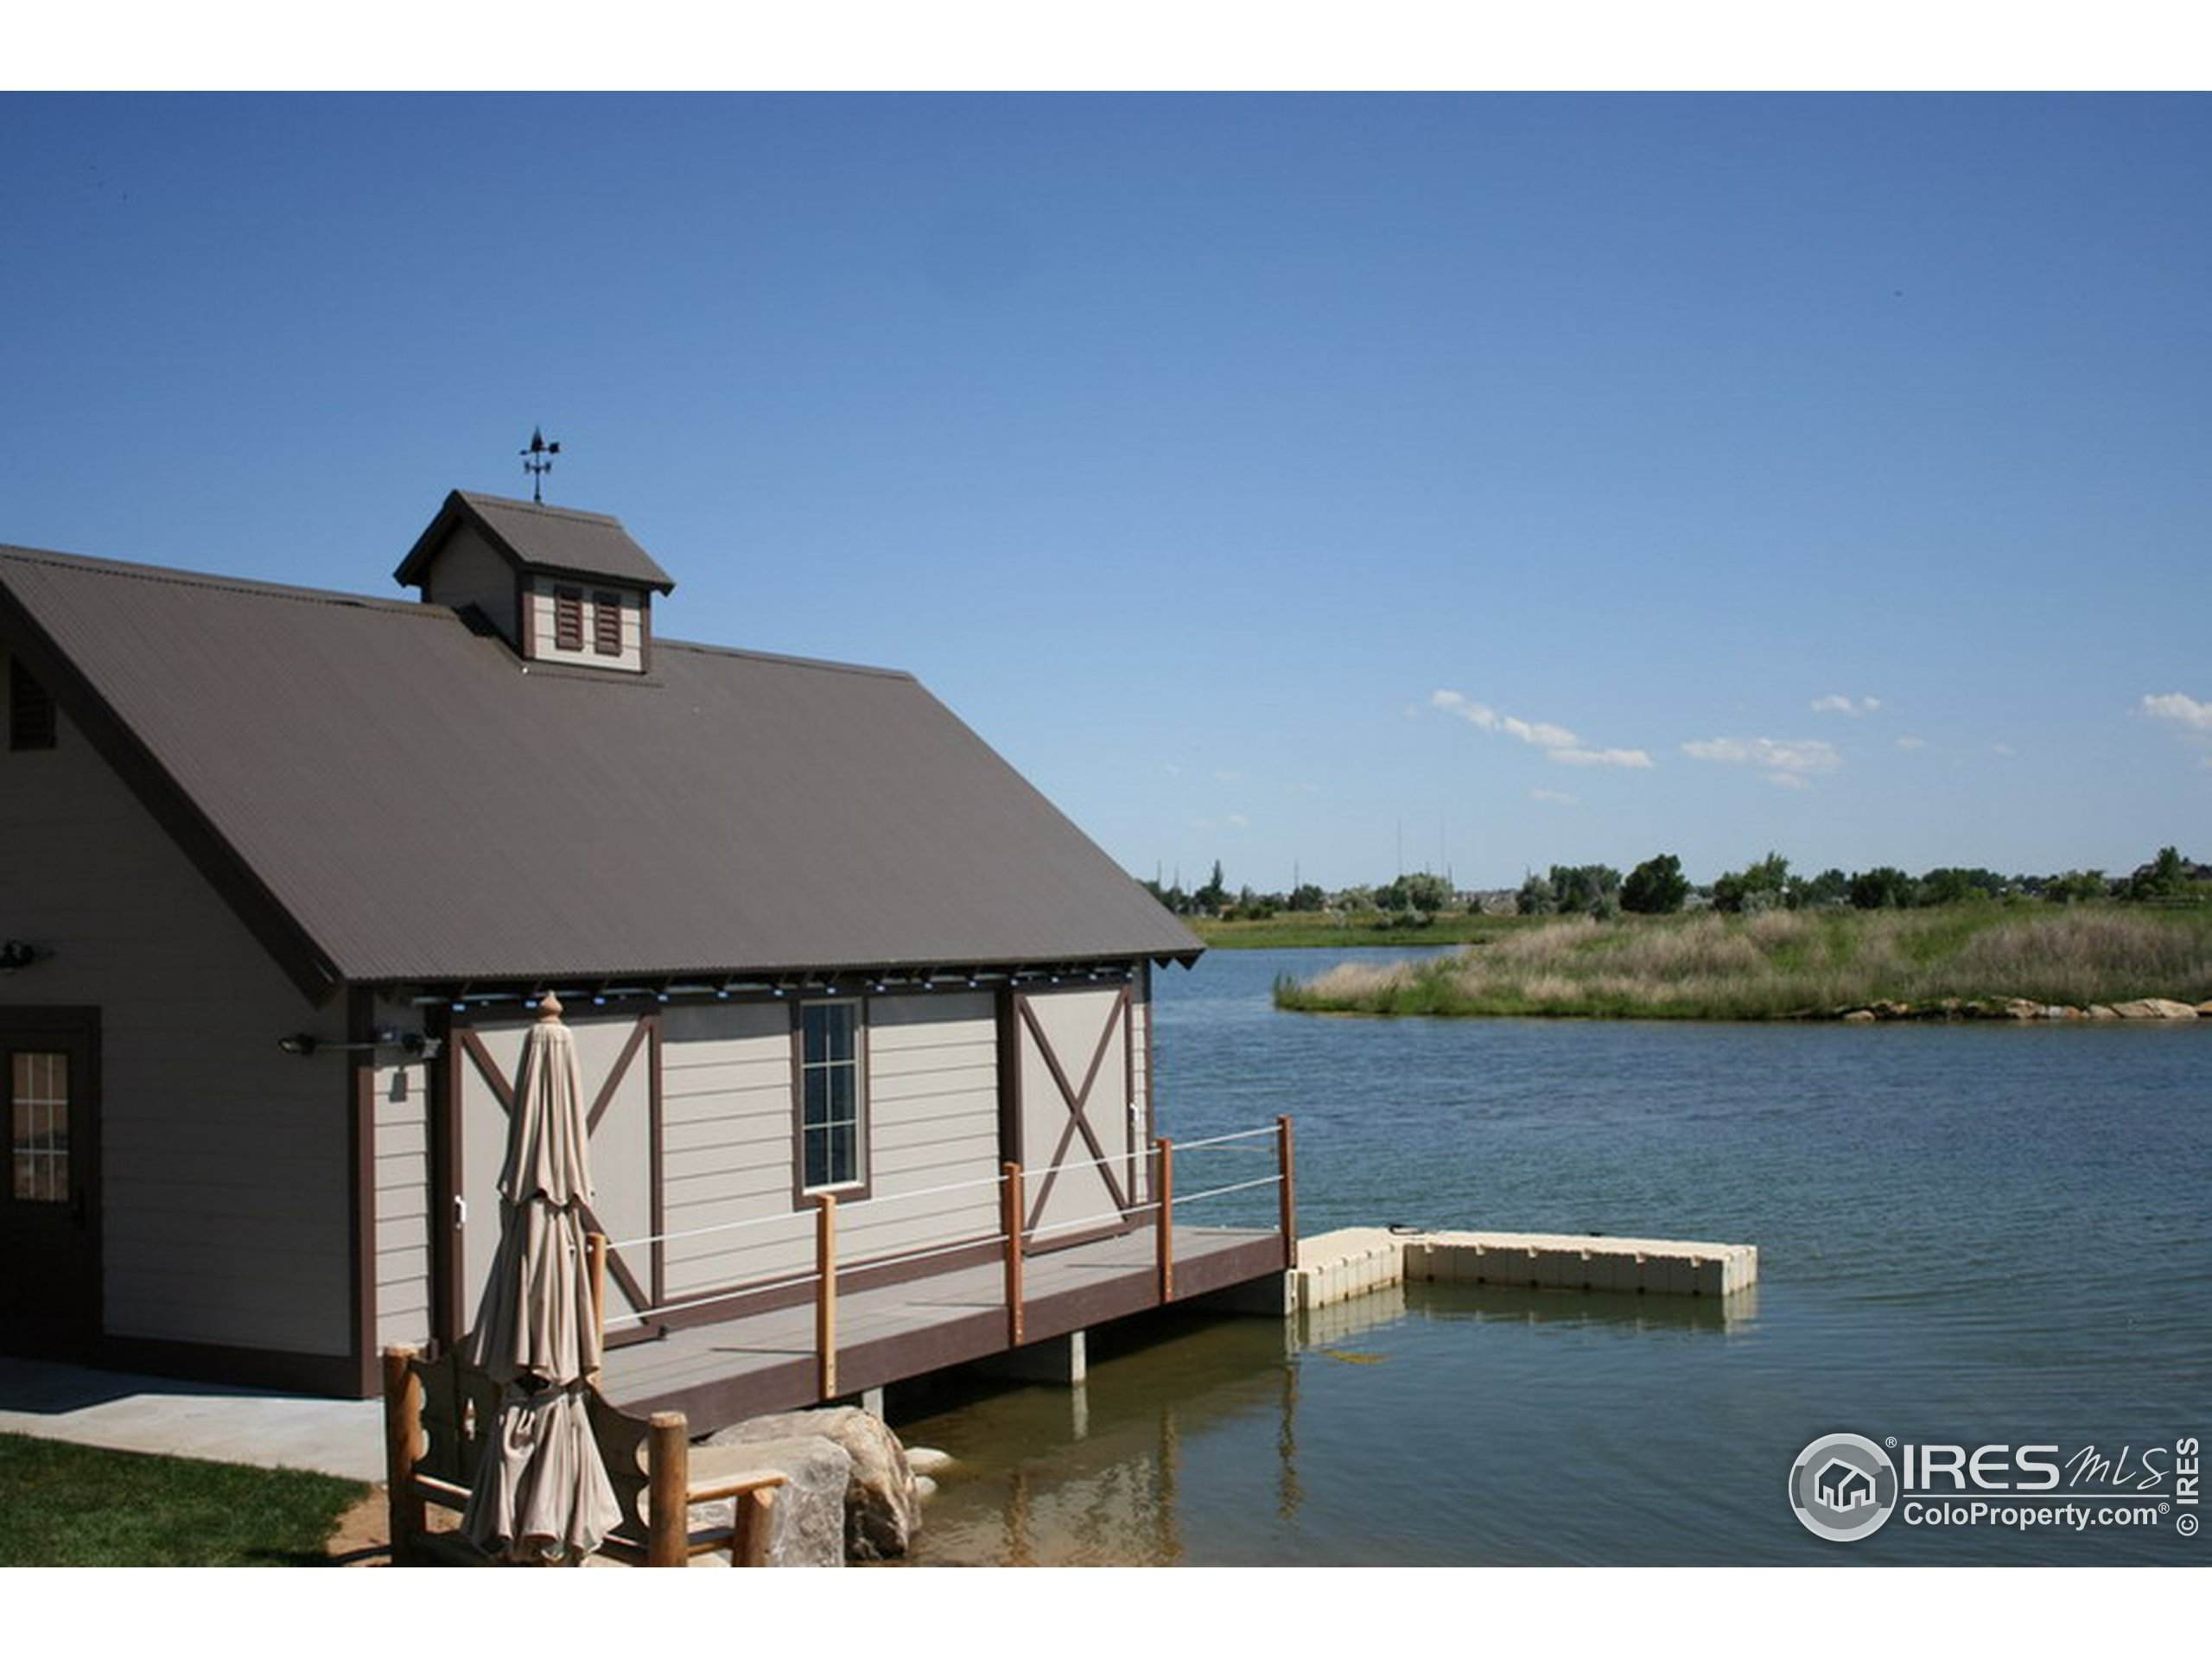 1826 Hydrangea Dr, Windsor, CO 80550 (MLS #938869) :: J2 Real Estate Group at Remax Alliance